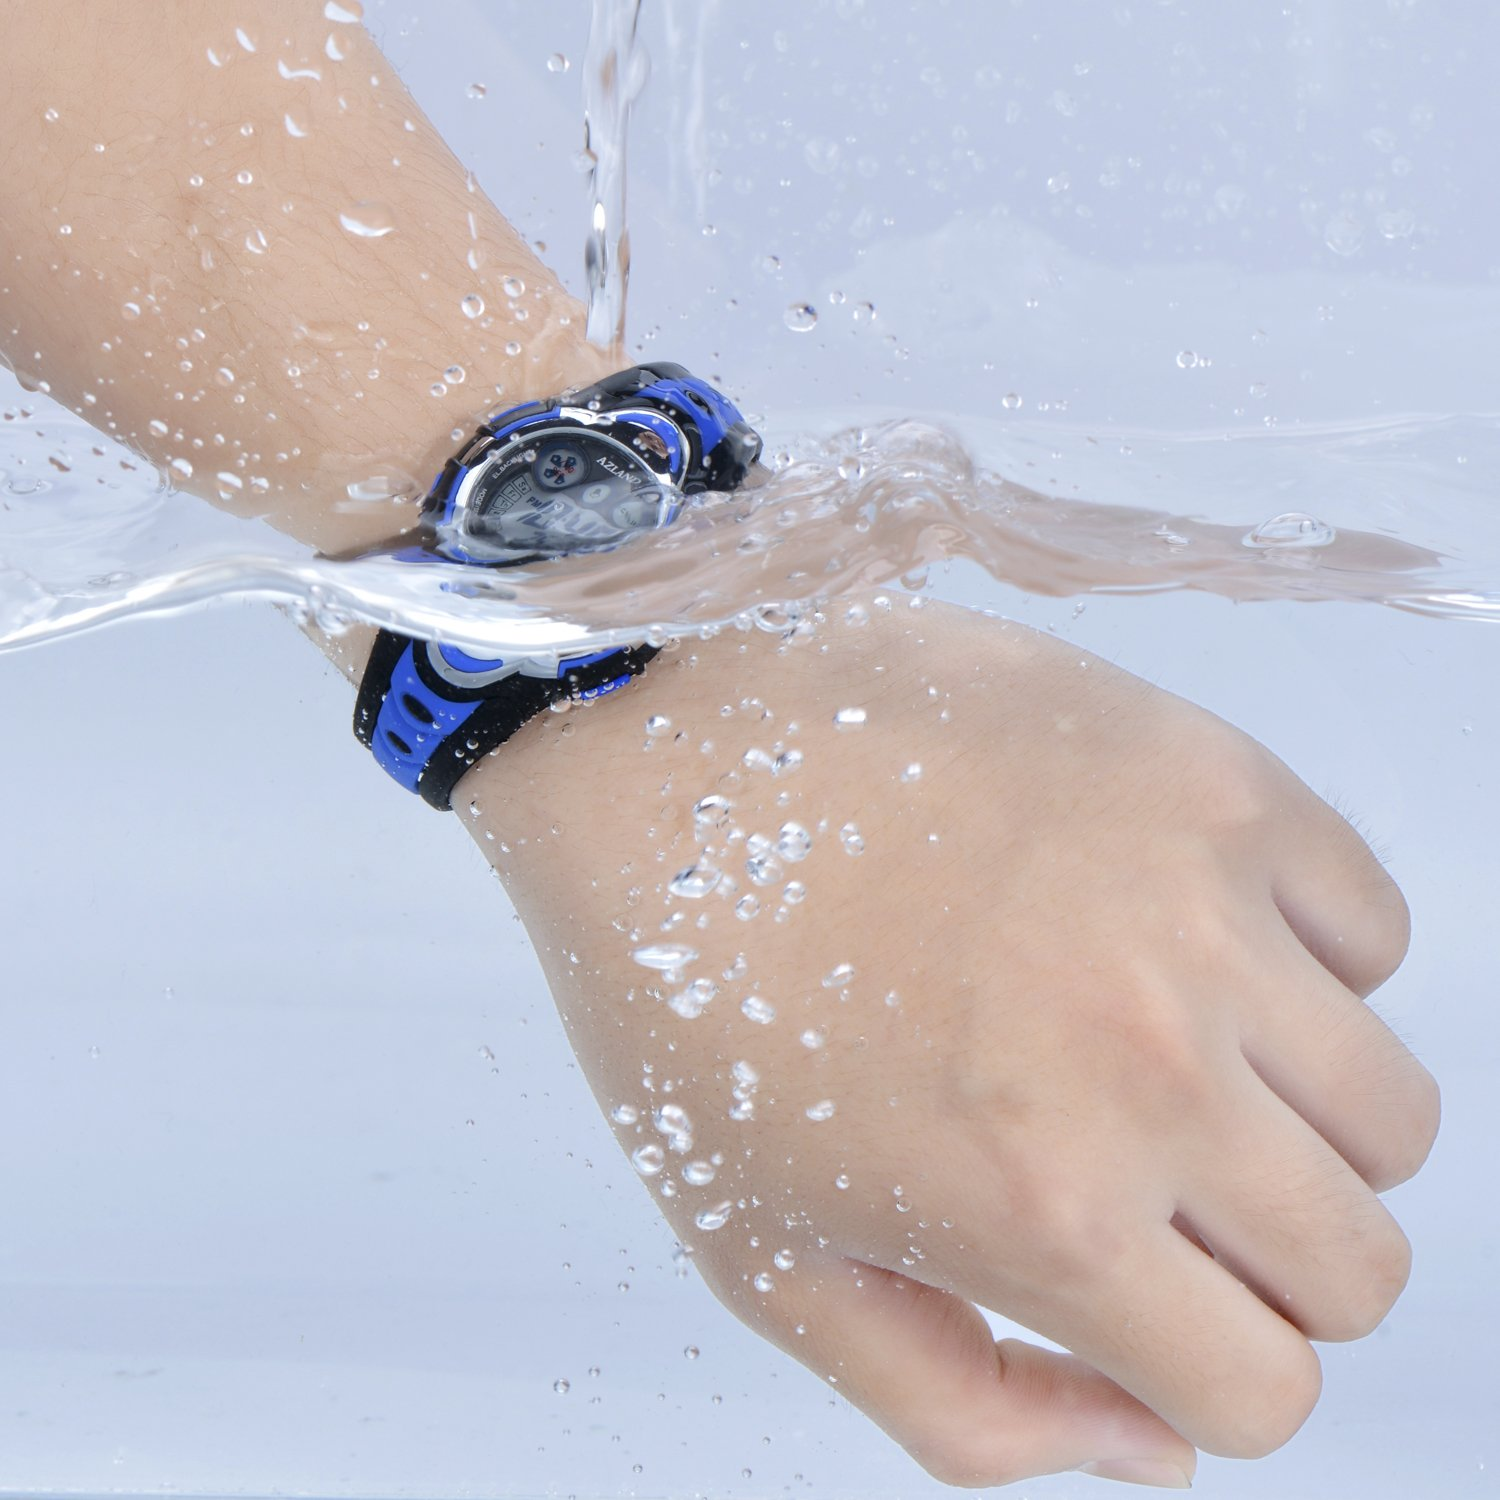 AZLAND Waterproof Swimming Led Digital Sports Watches for Children Kids Girls Boys,Rubber Strap,Blue by AZLAND (Image #3)